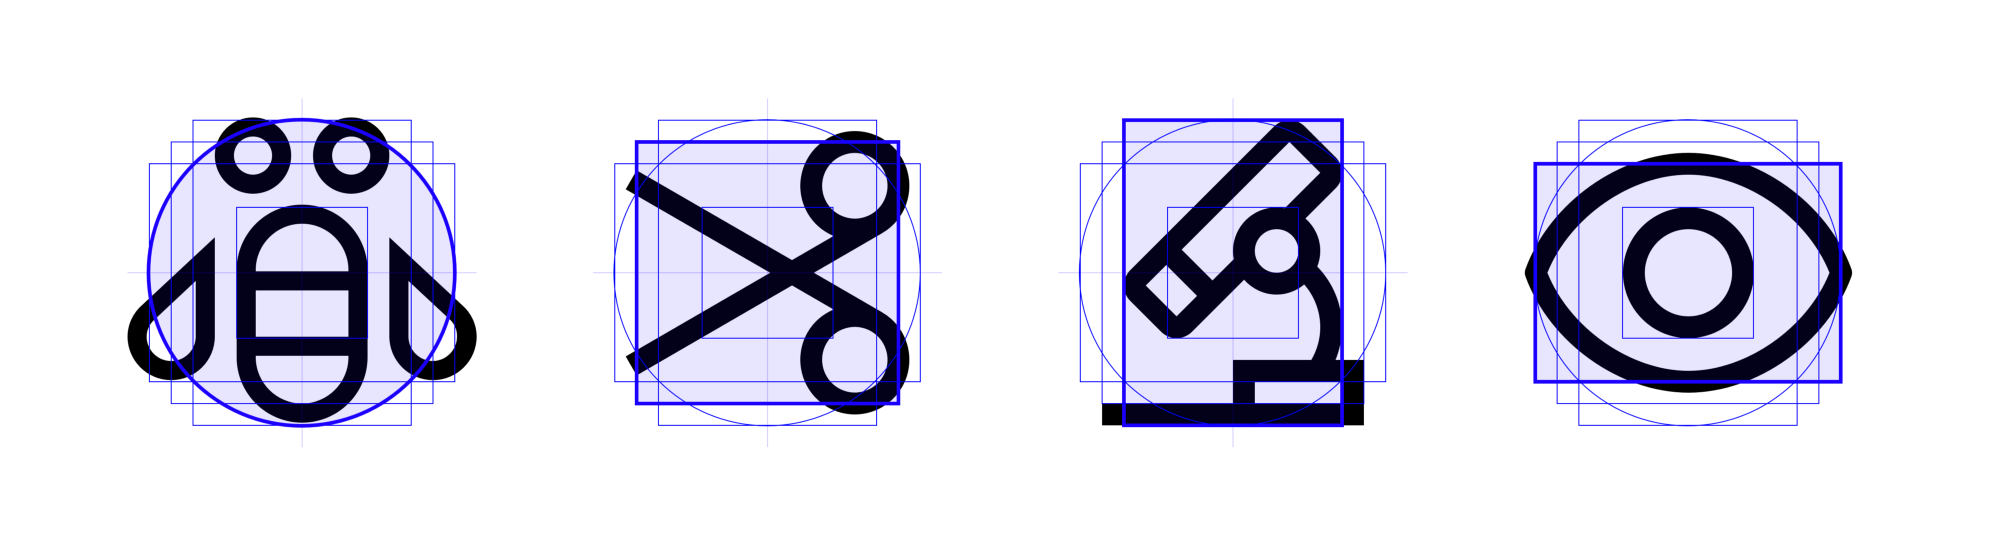 IBM icons for bee, cut, microscope, and eye reference keyshapes